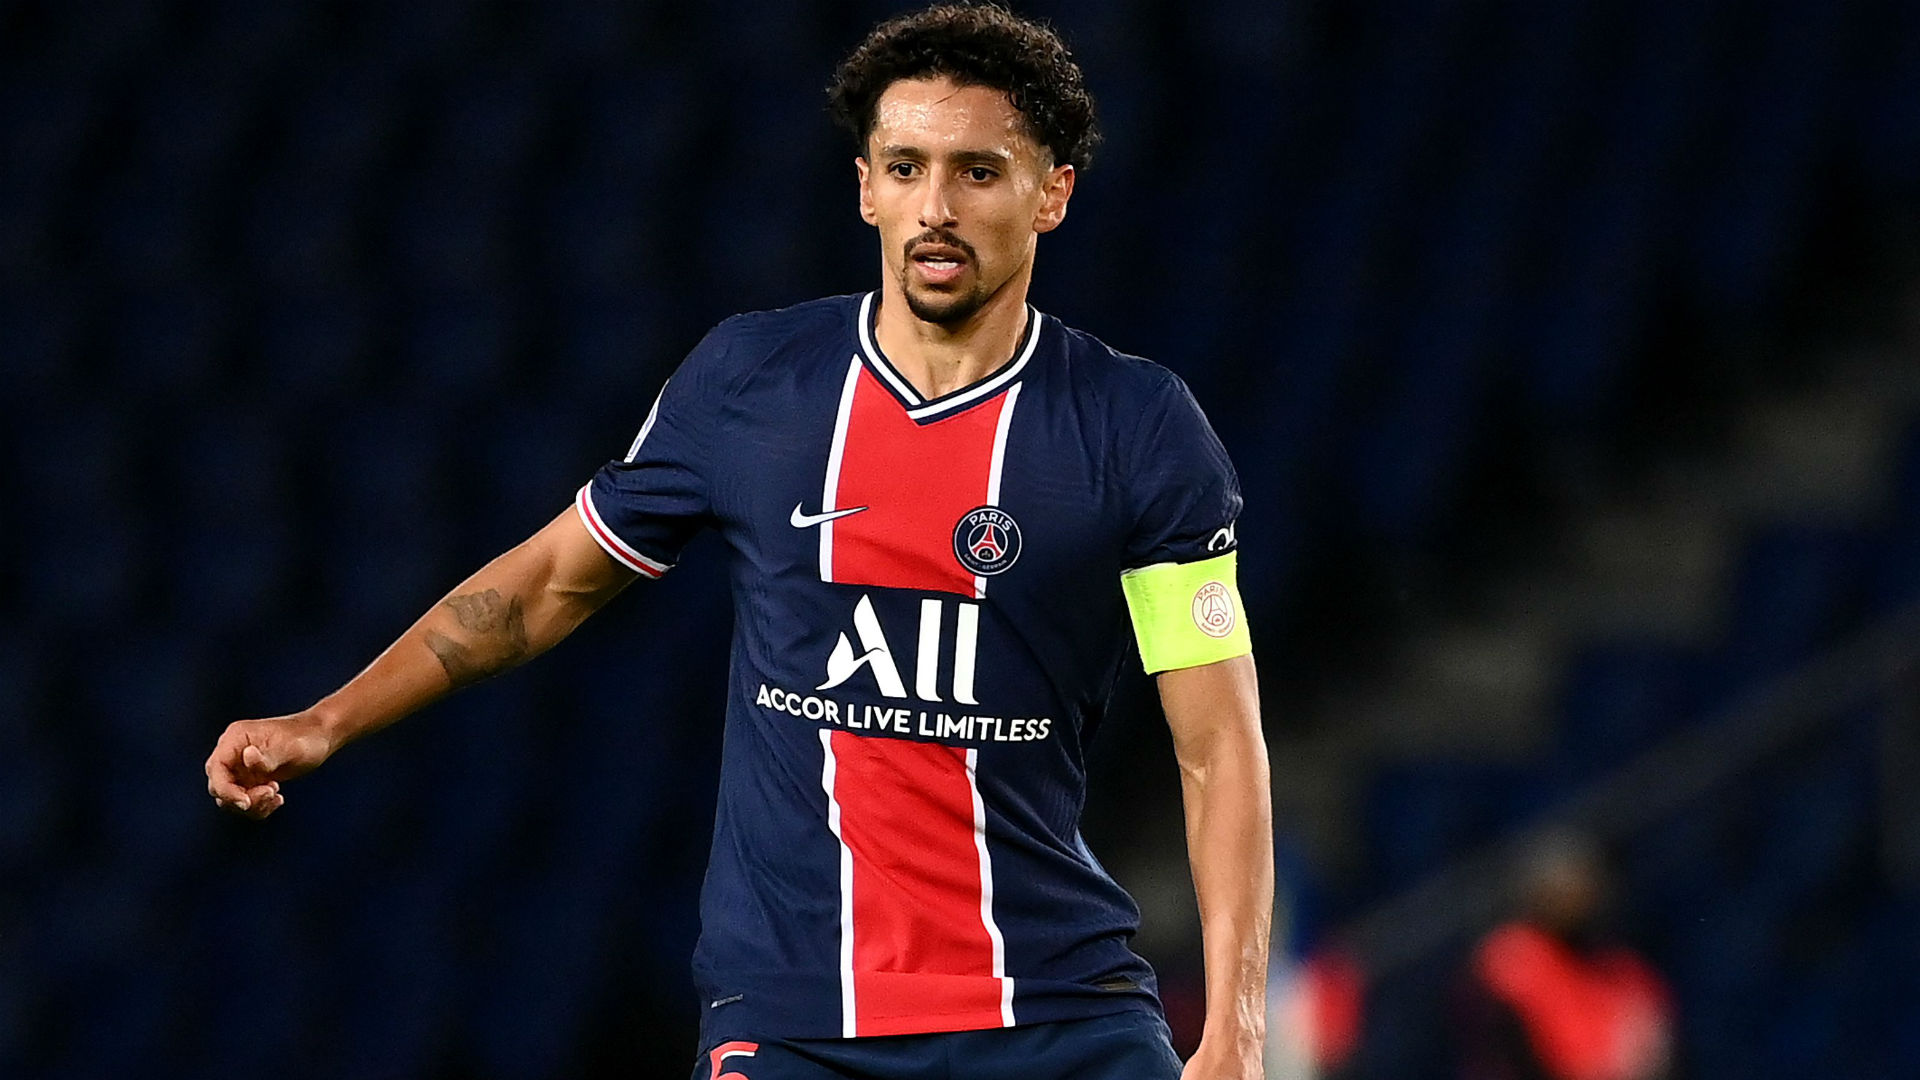 'Marquinhos is Ballon d'Or level' - Tuchel questions why PSG defender wasn't recognised by FIFA